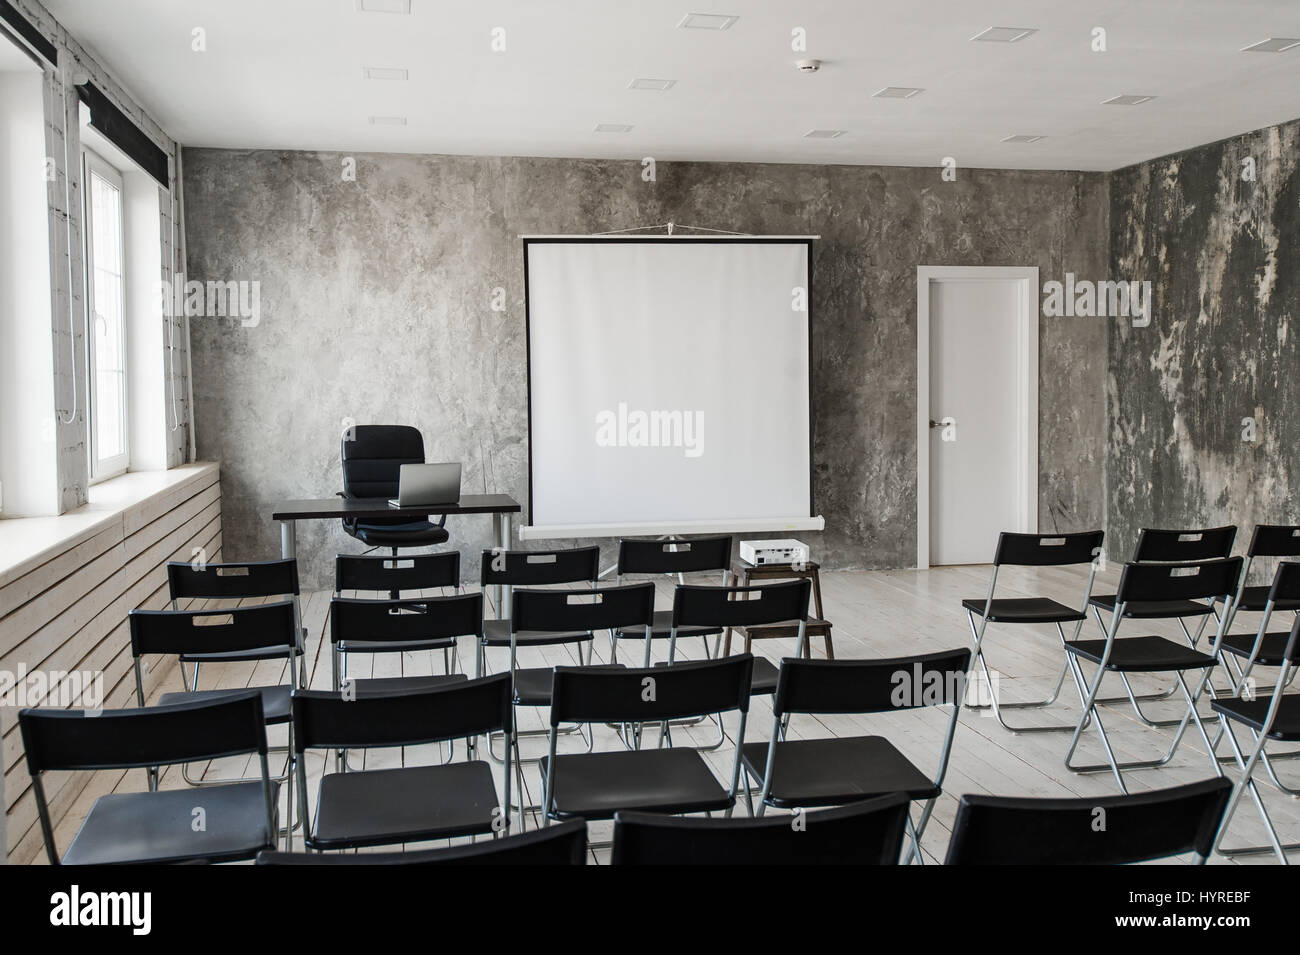 Modern Classroom Chairs ~ Empty modern classroom with black chairs projector screen